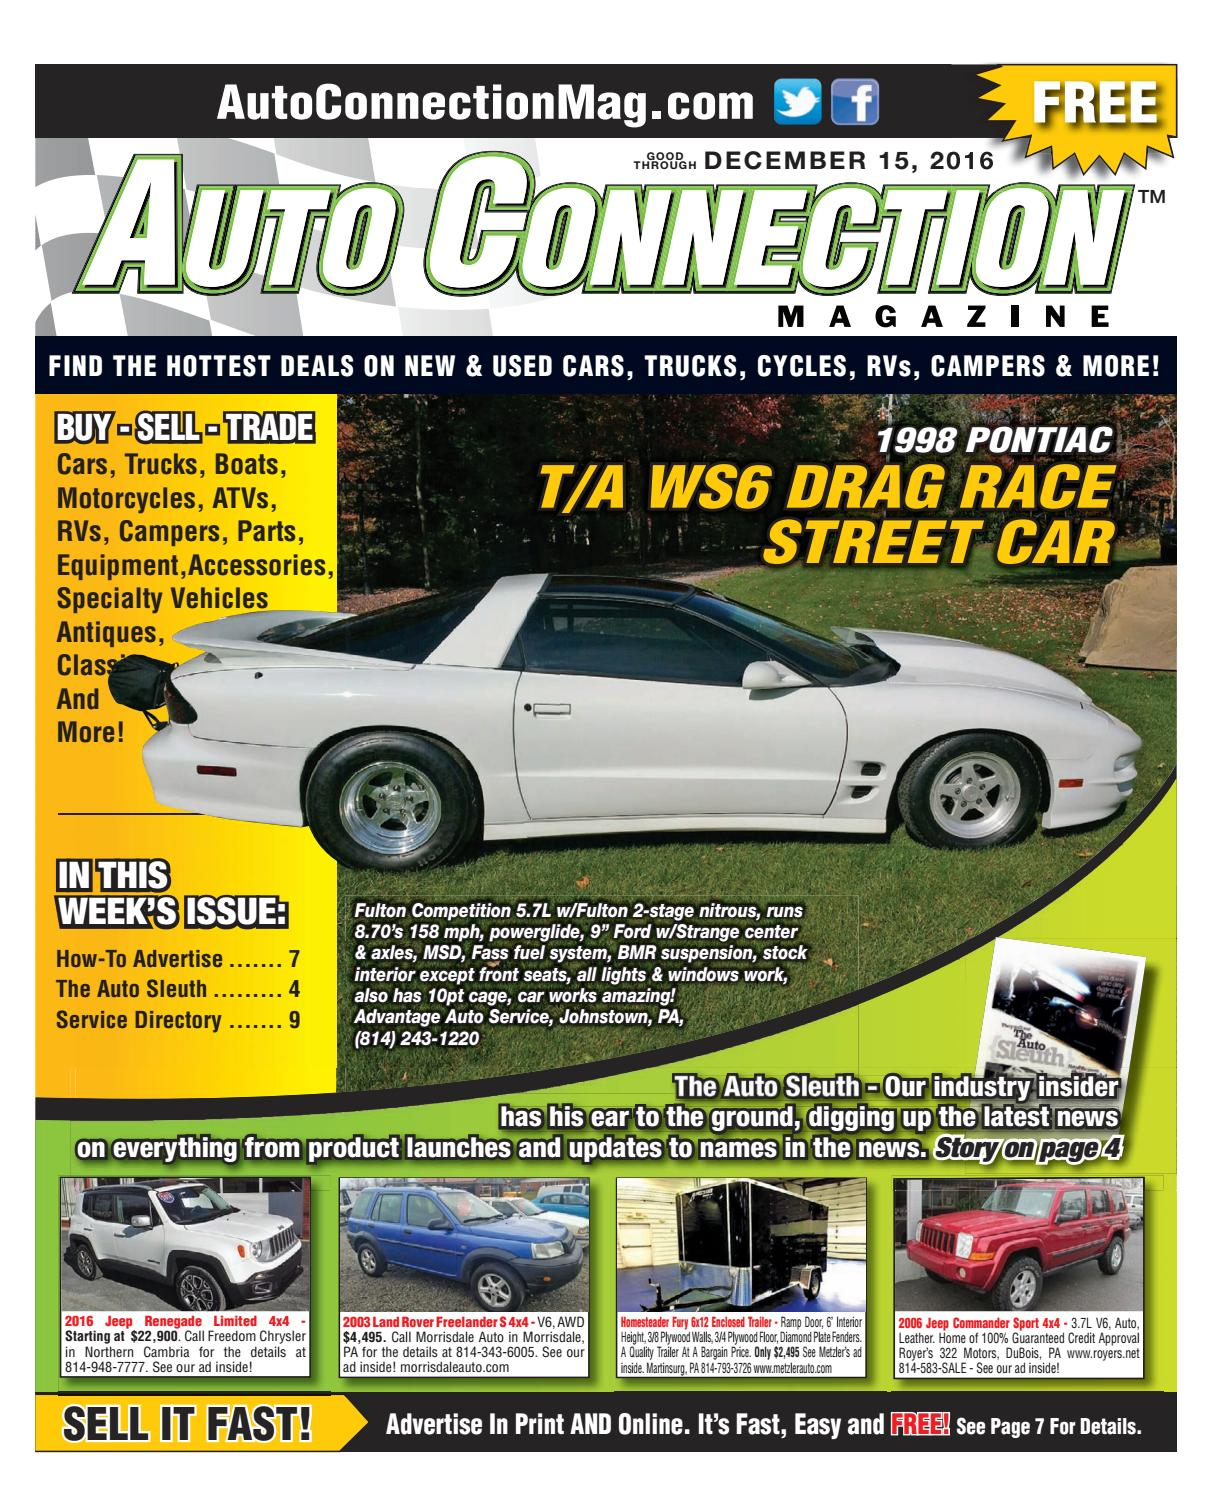 12-15-16 Auto Connection Magazine By Auto Connection